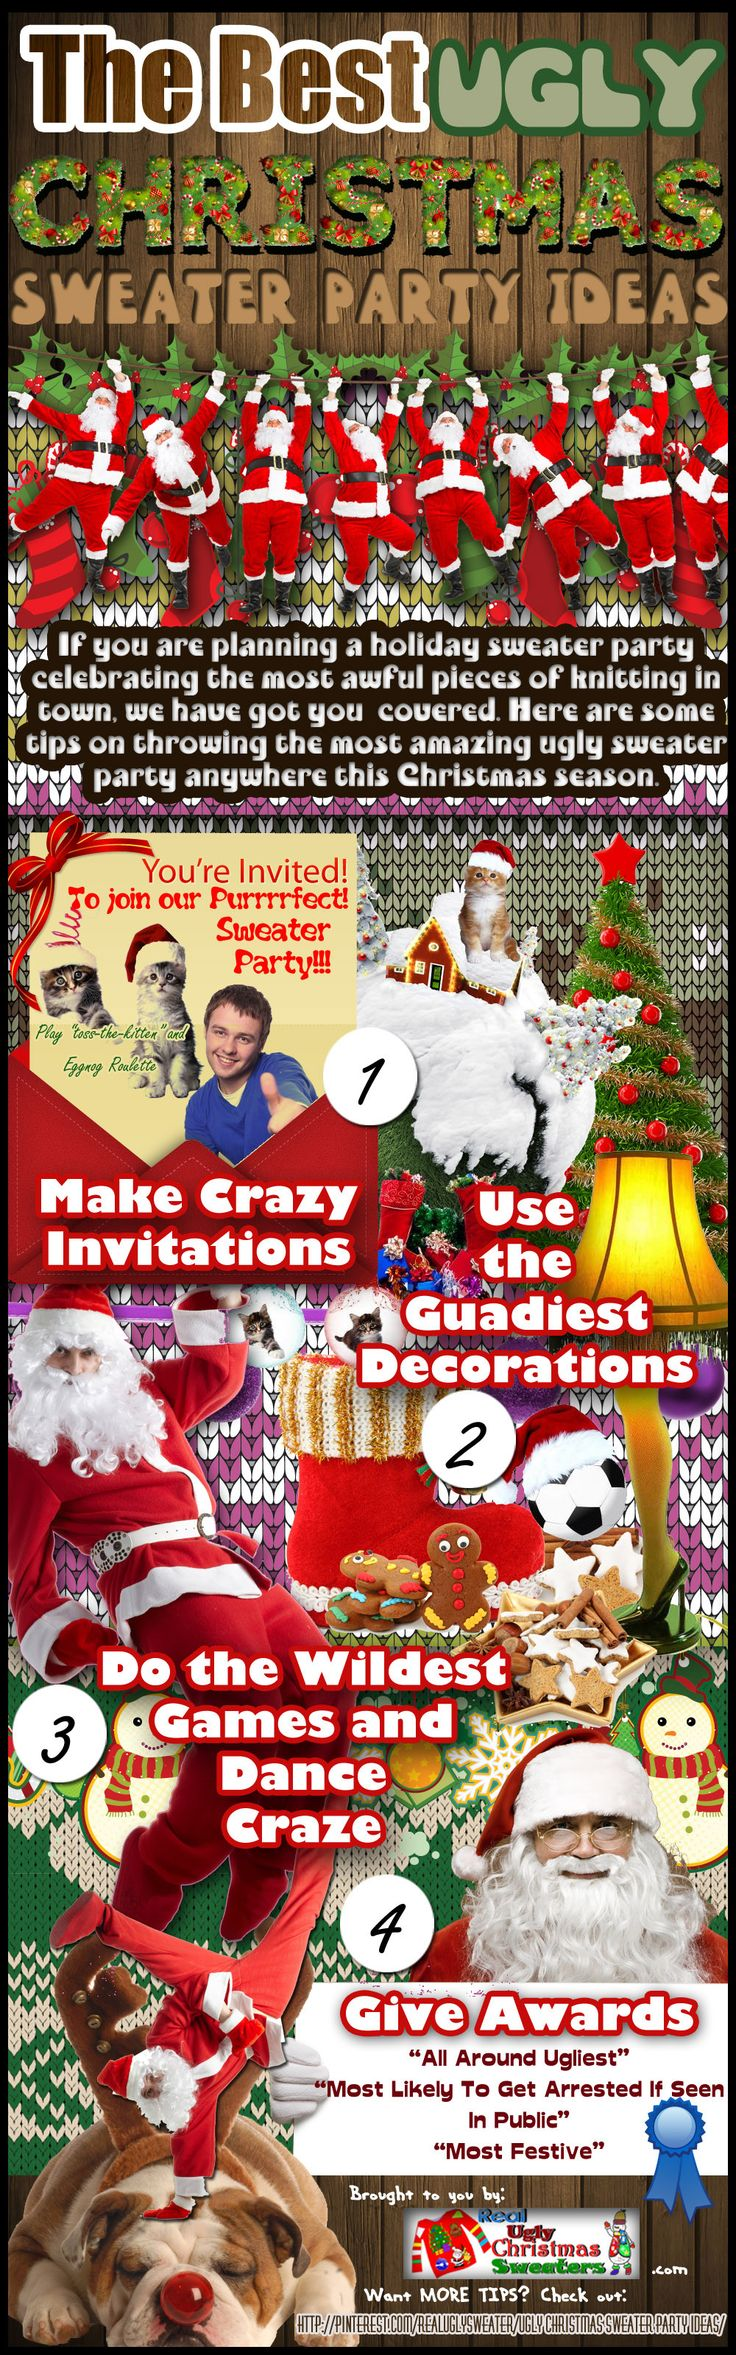 The Best Ugly Christmas Sweater Party Ideas [INFOGRAPHIC] #Christmas#sweater